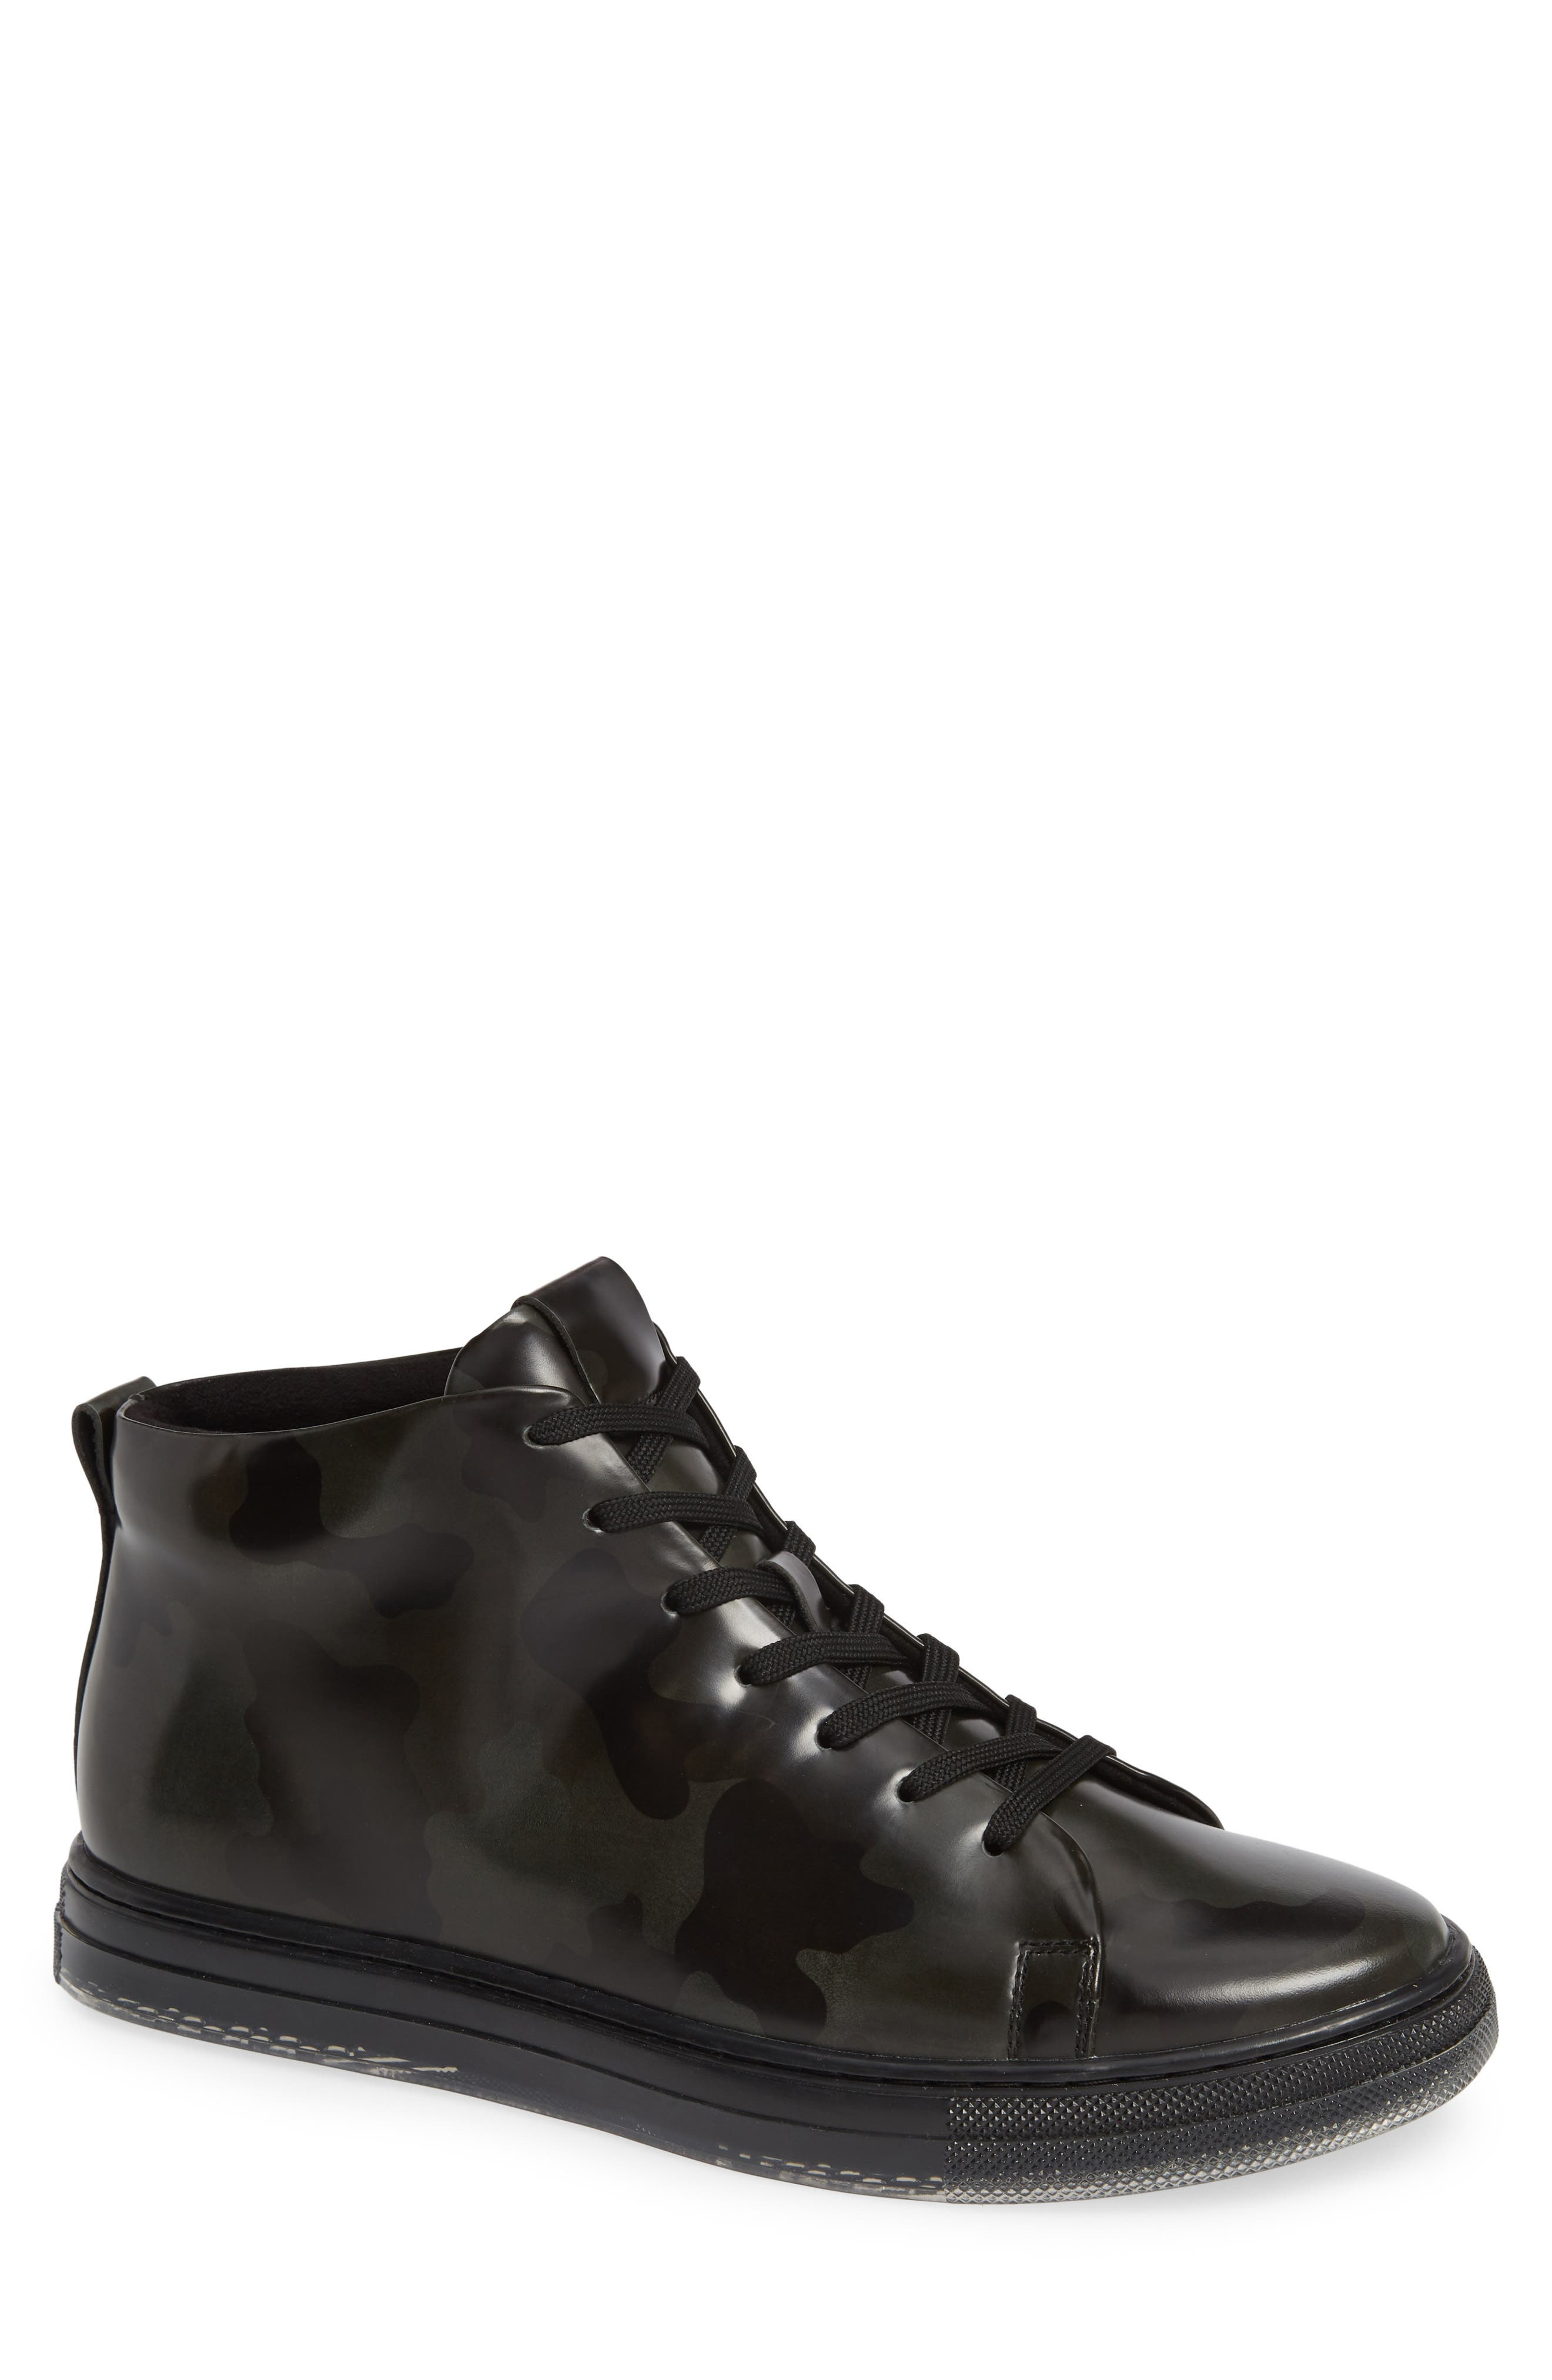 KENNETH COLE NEW YORK, Kenneth Cole Colvin Camo High Top Sneaker, Main thumbnail 1, color, OLIVE CAMO LEATHER